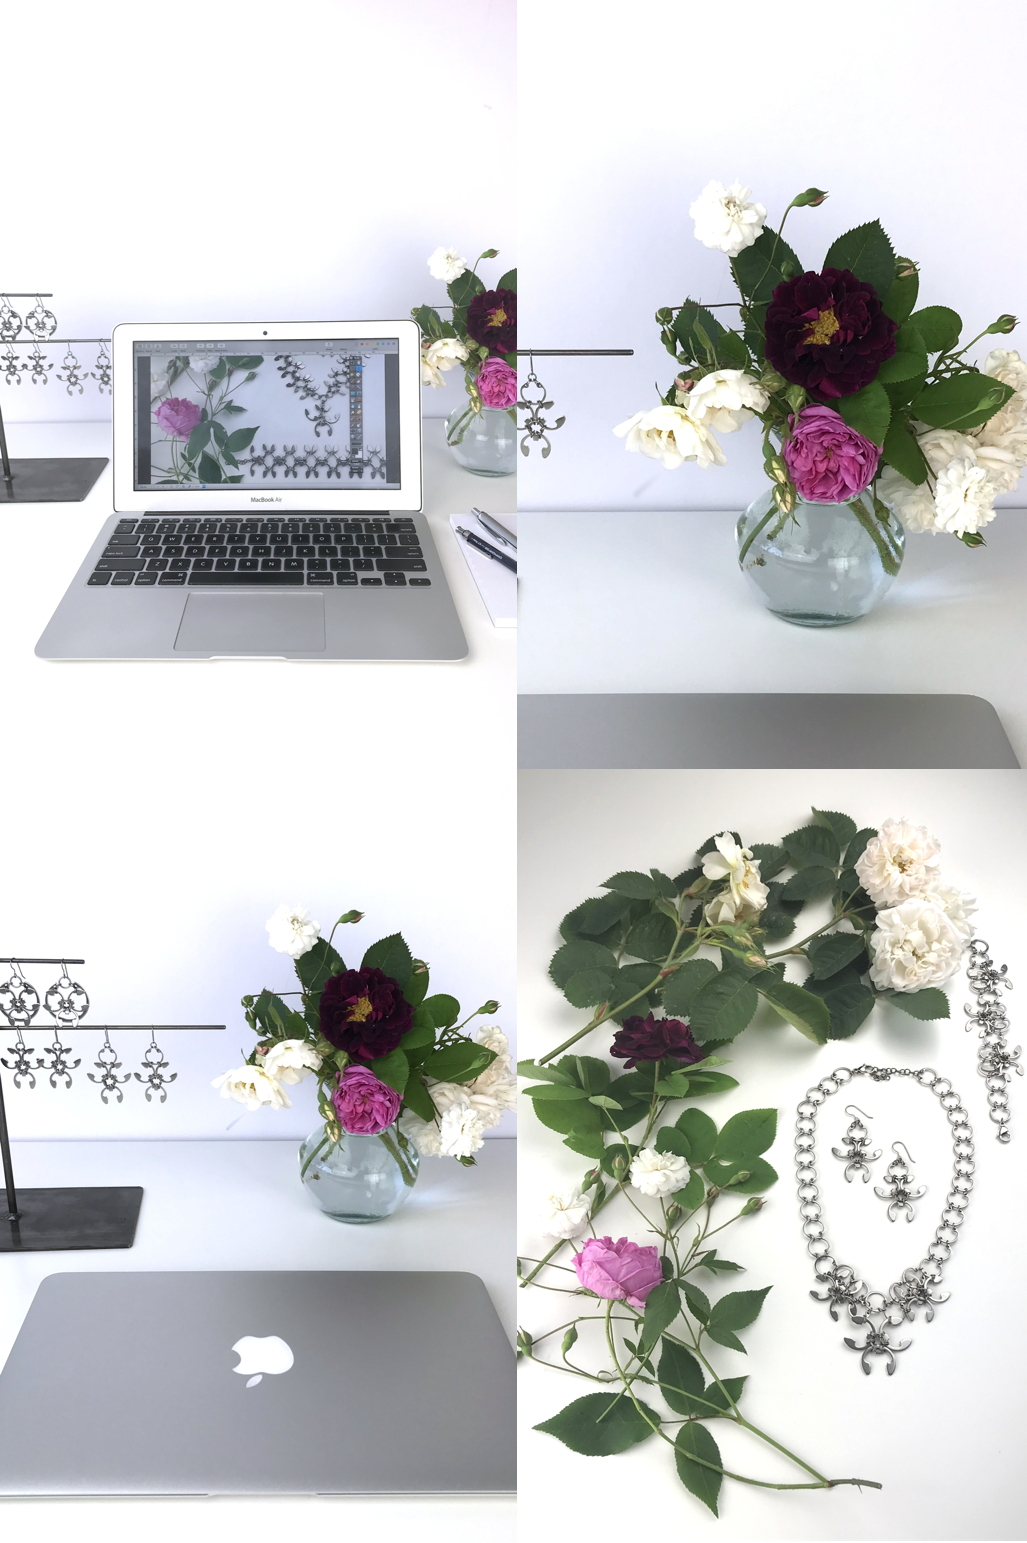 Compiled image of flowers on a desk workspace, featuring a laptop and a small arrangement of old roses (Rosa alba, Rosa gallica officinalis, moss rose 'Capitaine John Ingram', & 'Felicite et Perpetue') with jewelry from the Mechanical Garden collection in Wraptillion's studio.